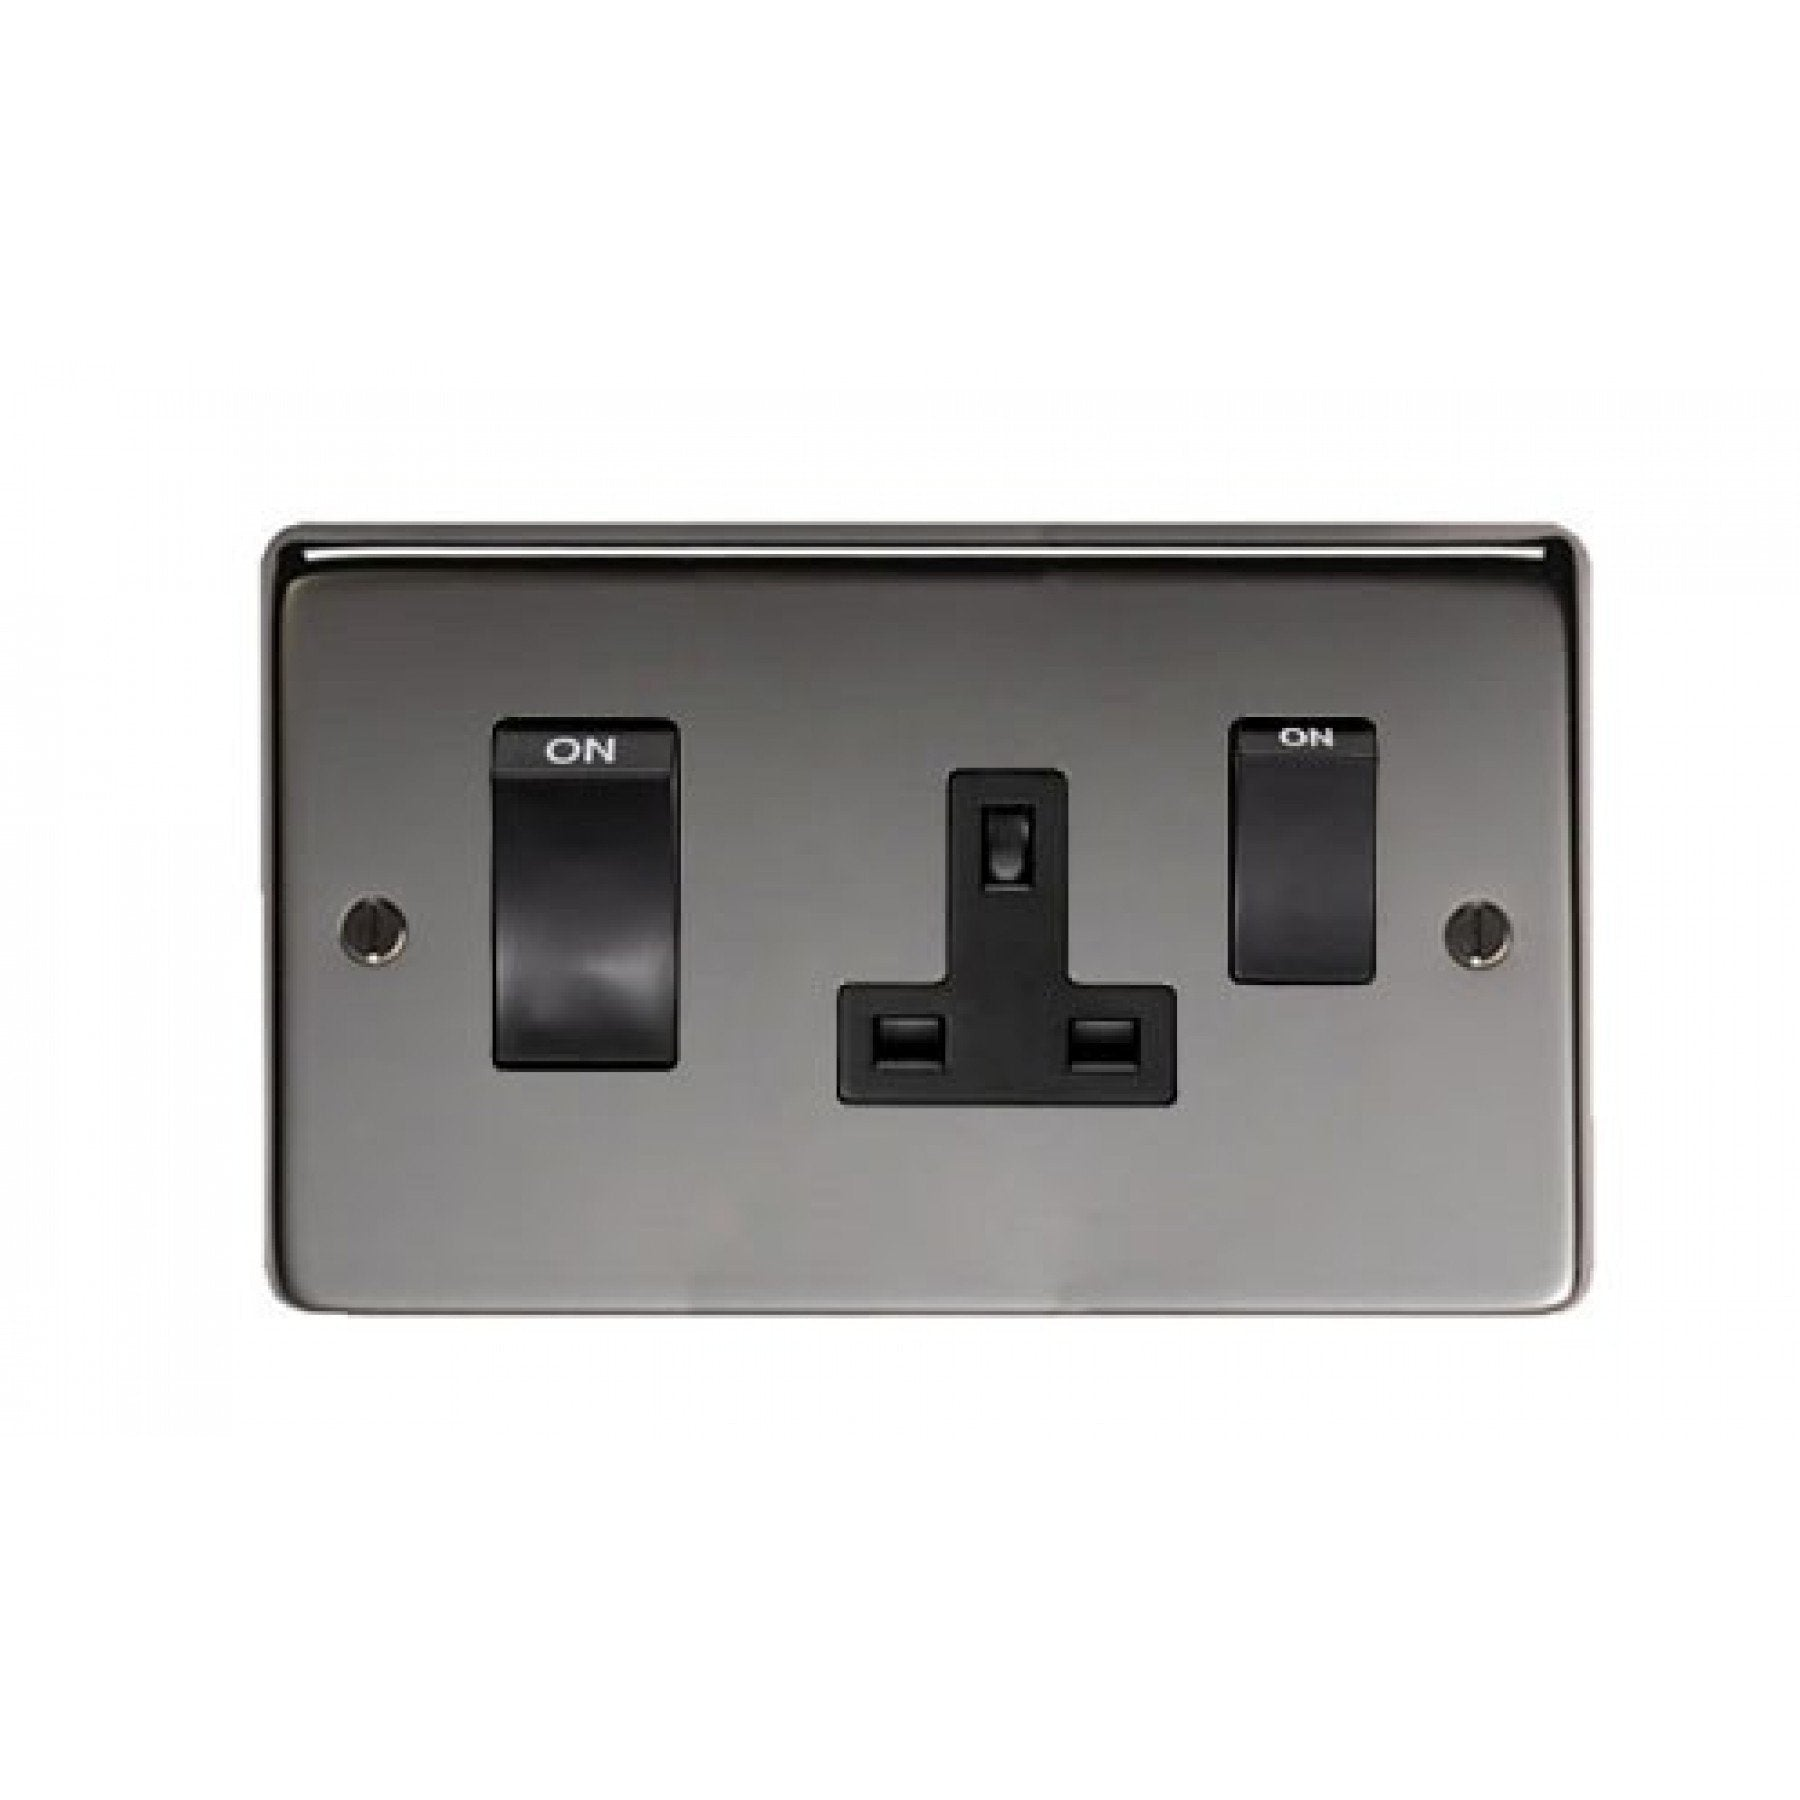 BN 45 Amp Switch & Socket - No.42 Interiors